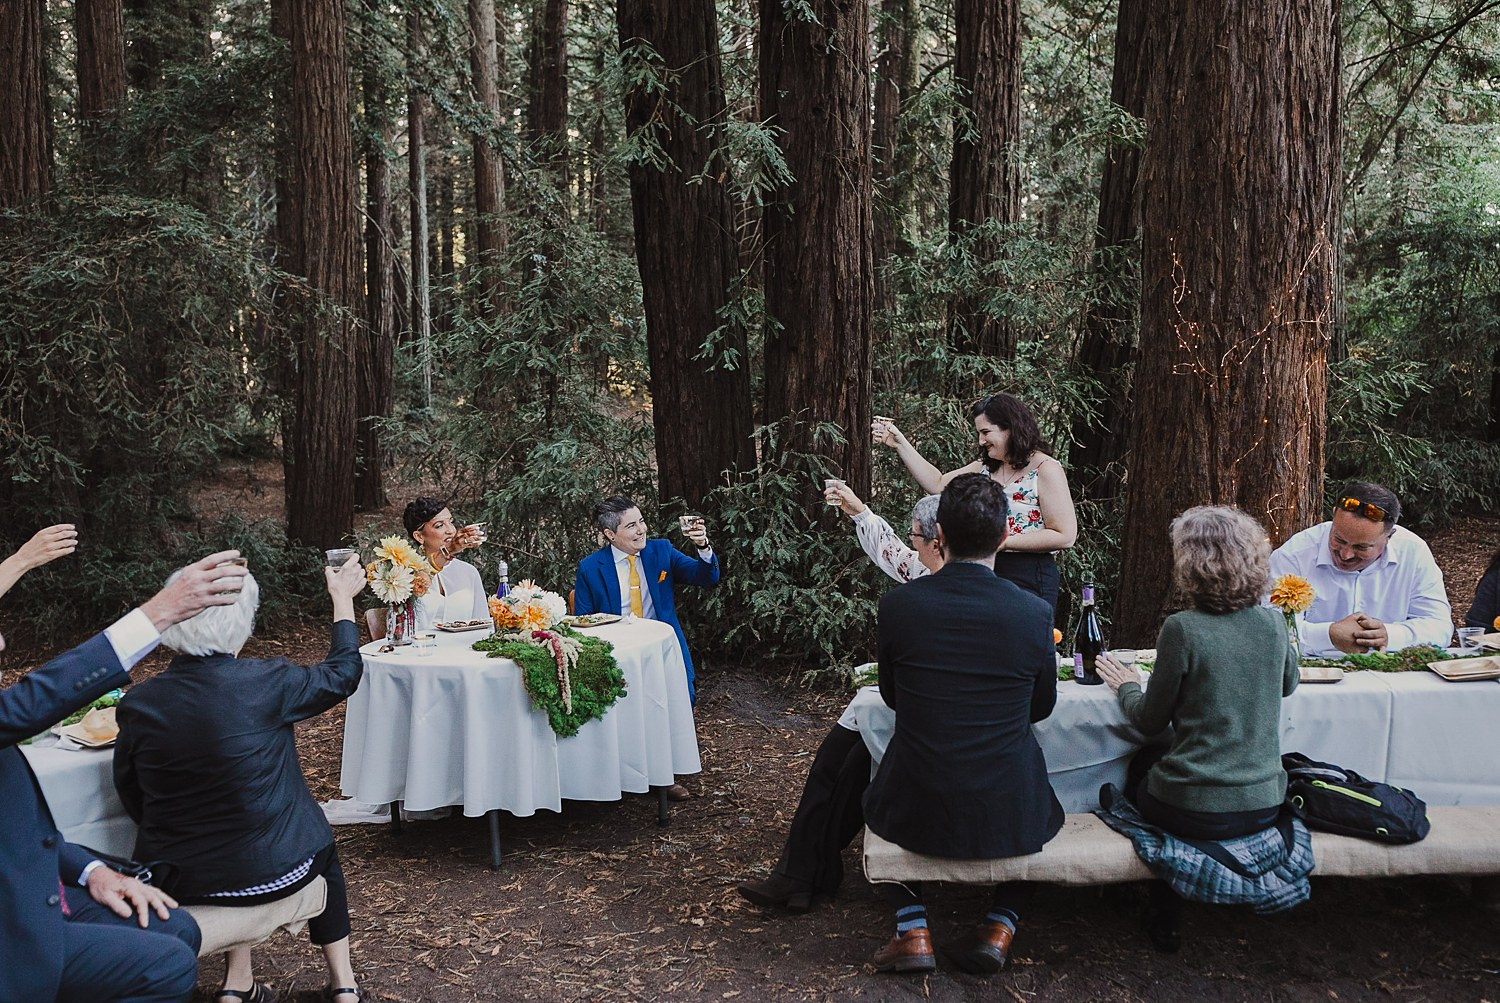 Toasts at an intimate wedding in Joaquin Miller Park in the Oakland Hills